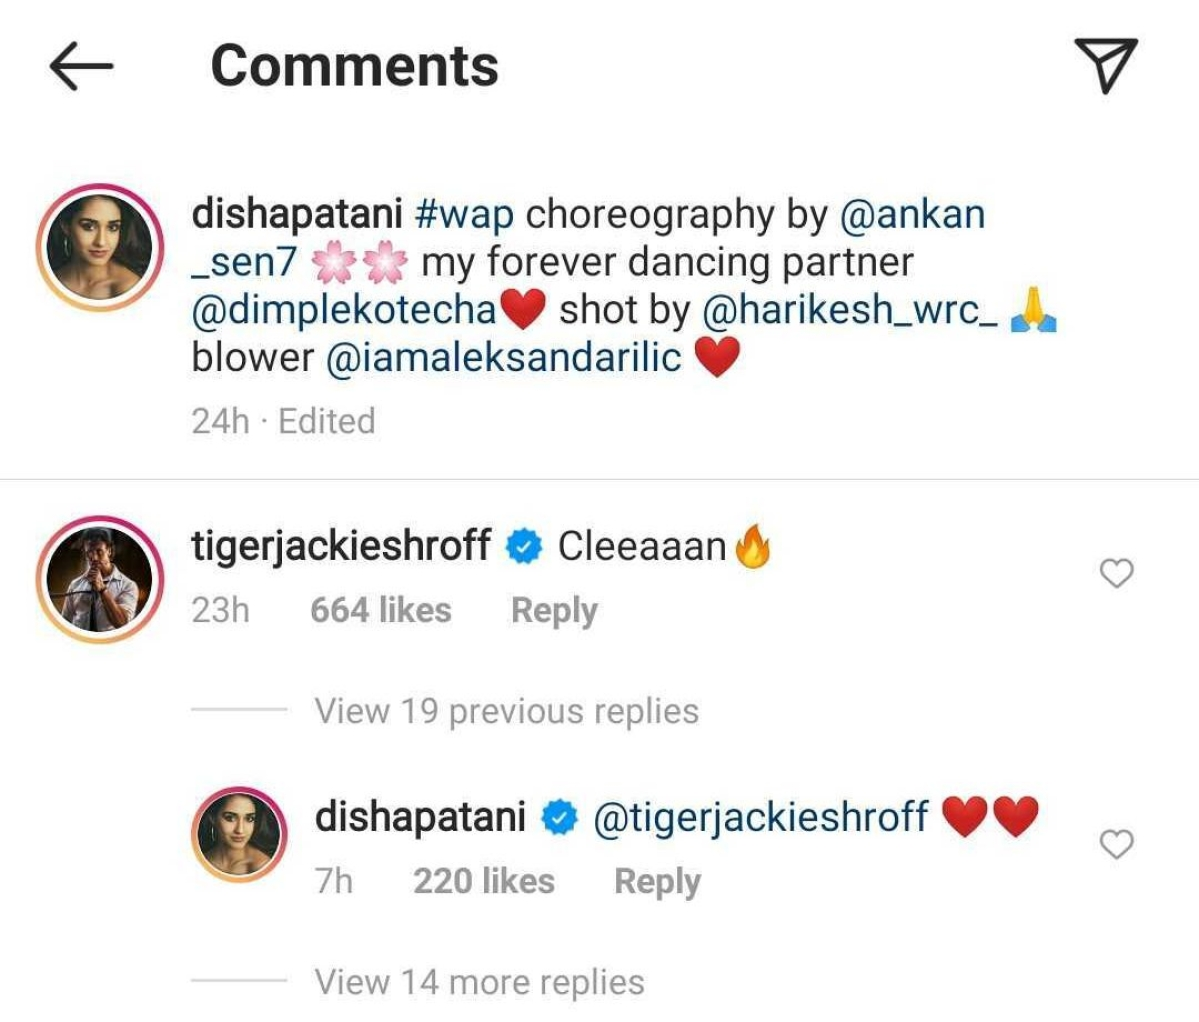 Watch: Disha Patani's sizzling moves on 'WAP' get a 'clean' comment from Tiger Shroff